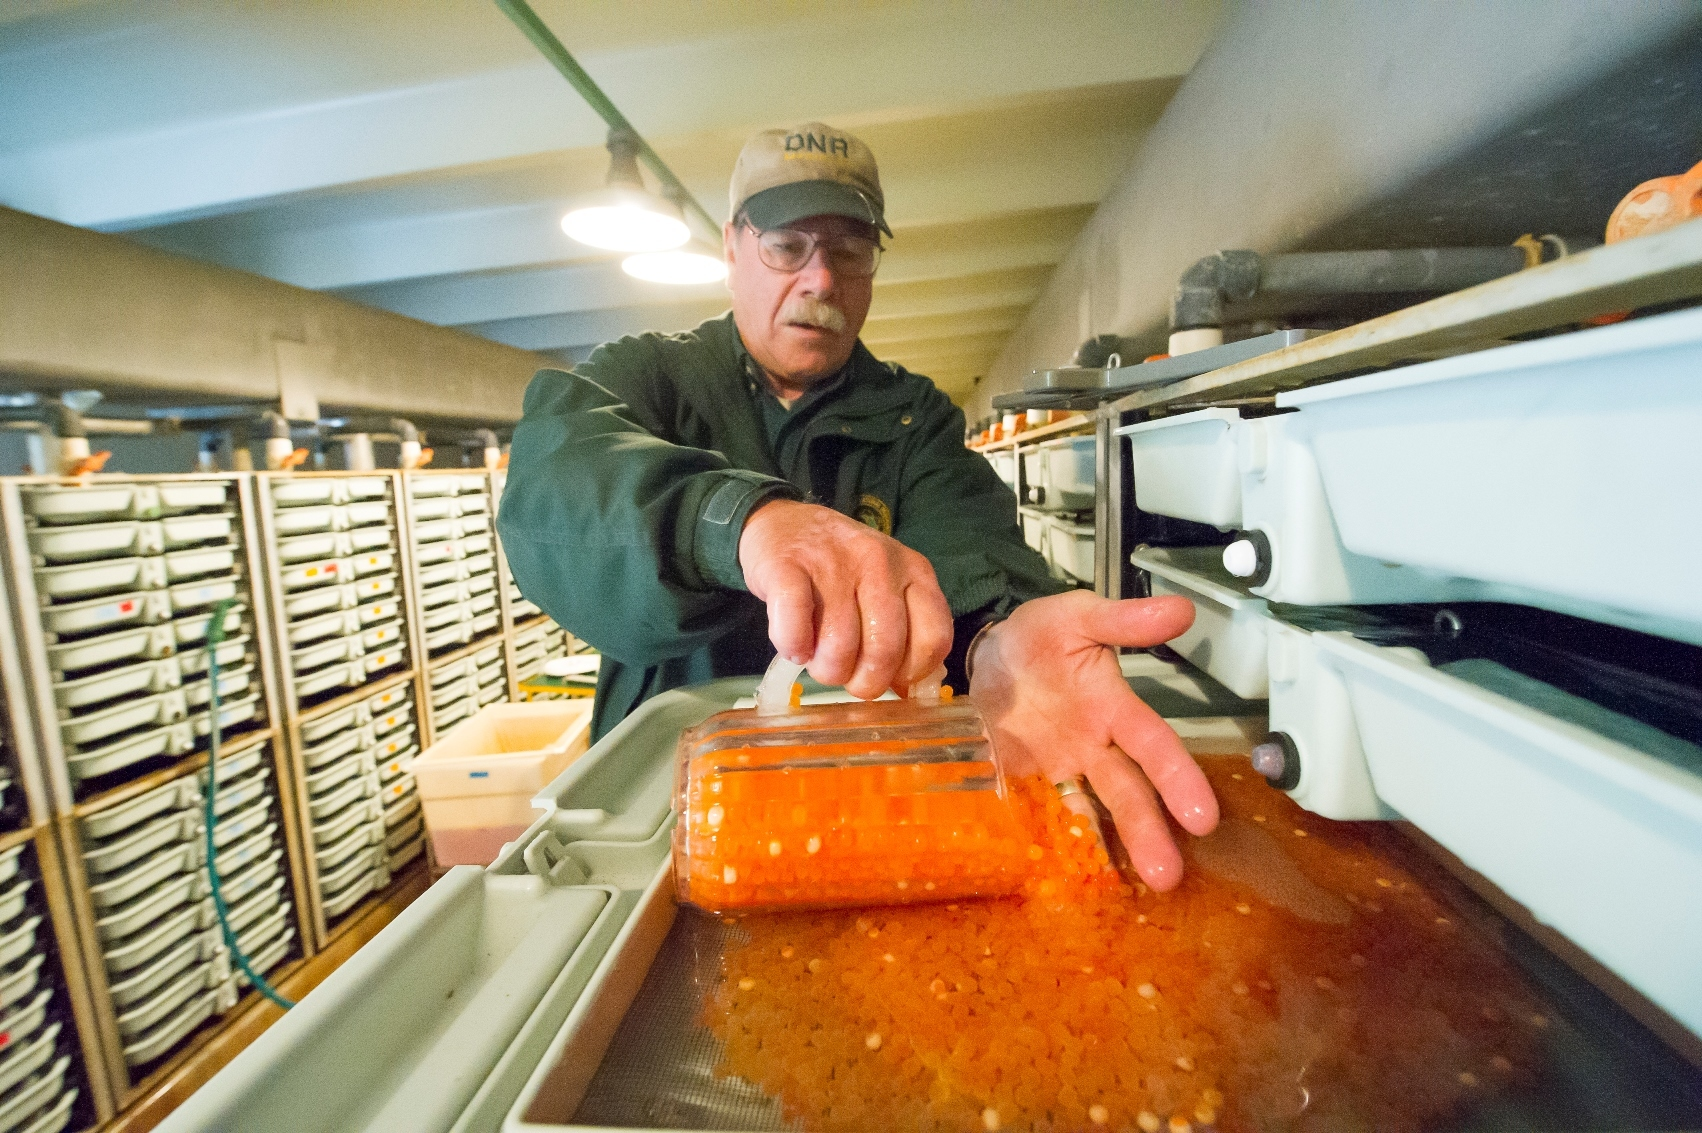 A Michigan Department of Natural Resources worker scoops salmon eggs into a container at the Platte River weir.